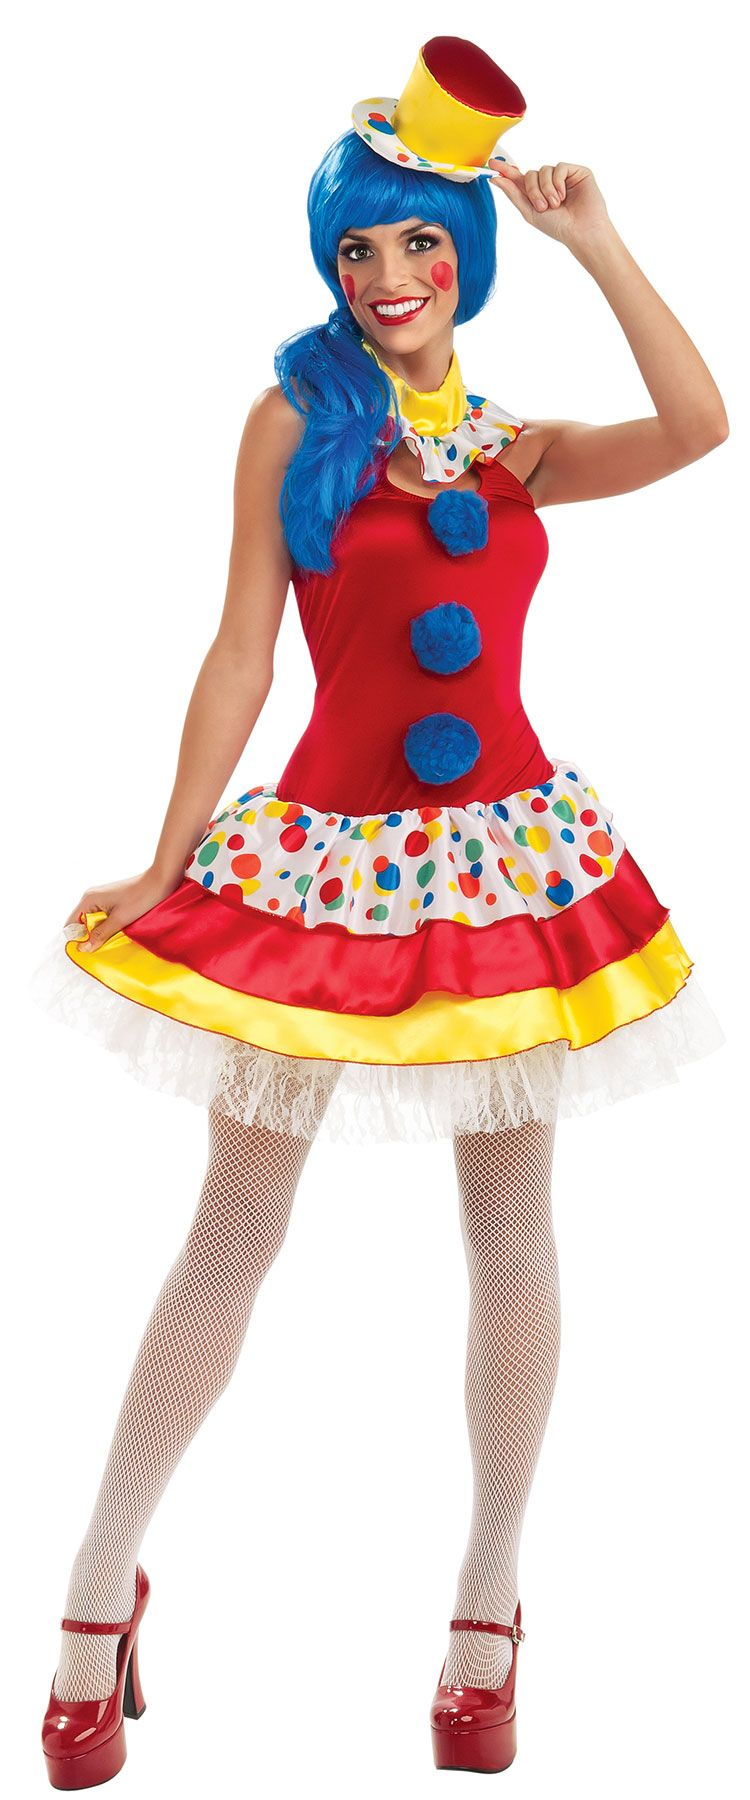 womens giggles the clown costume giggles the clown adult costume tricks jokes balloons birthday parties and circus fun await those who don this - Girl Clown Halloween Costumes